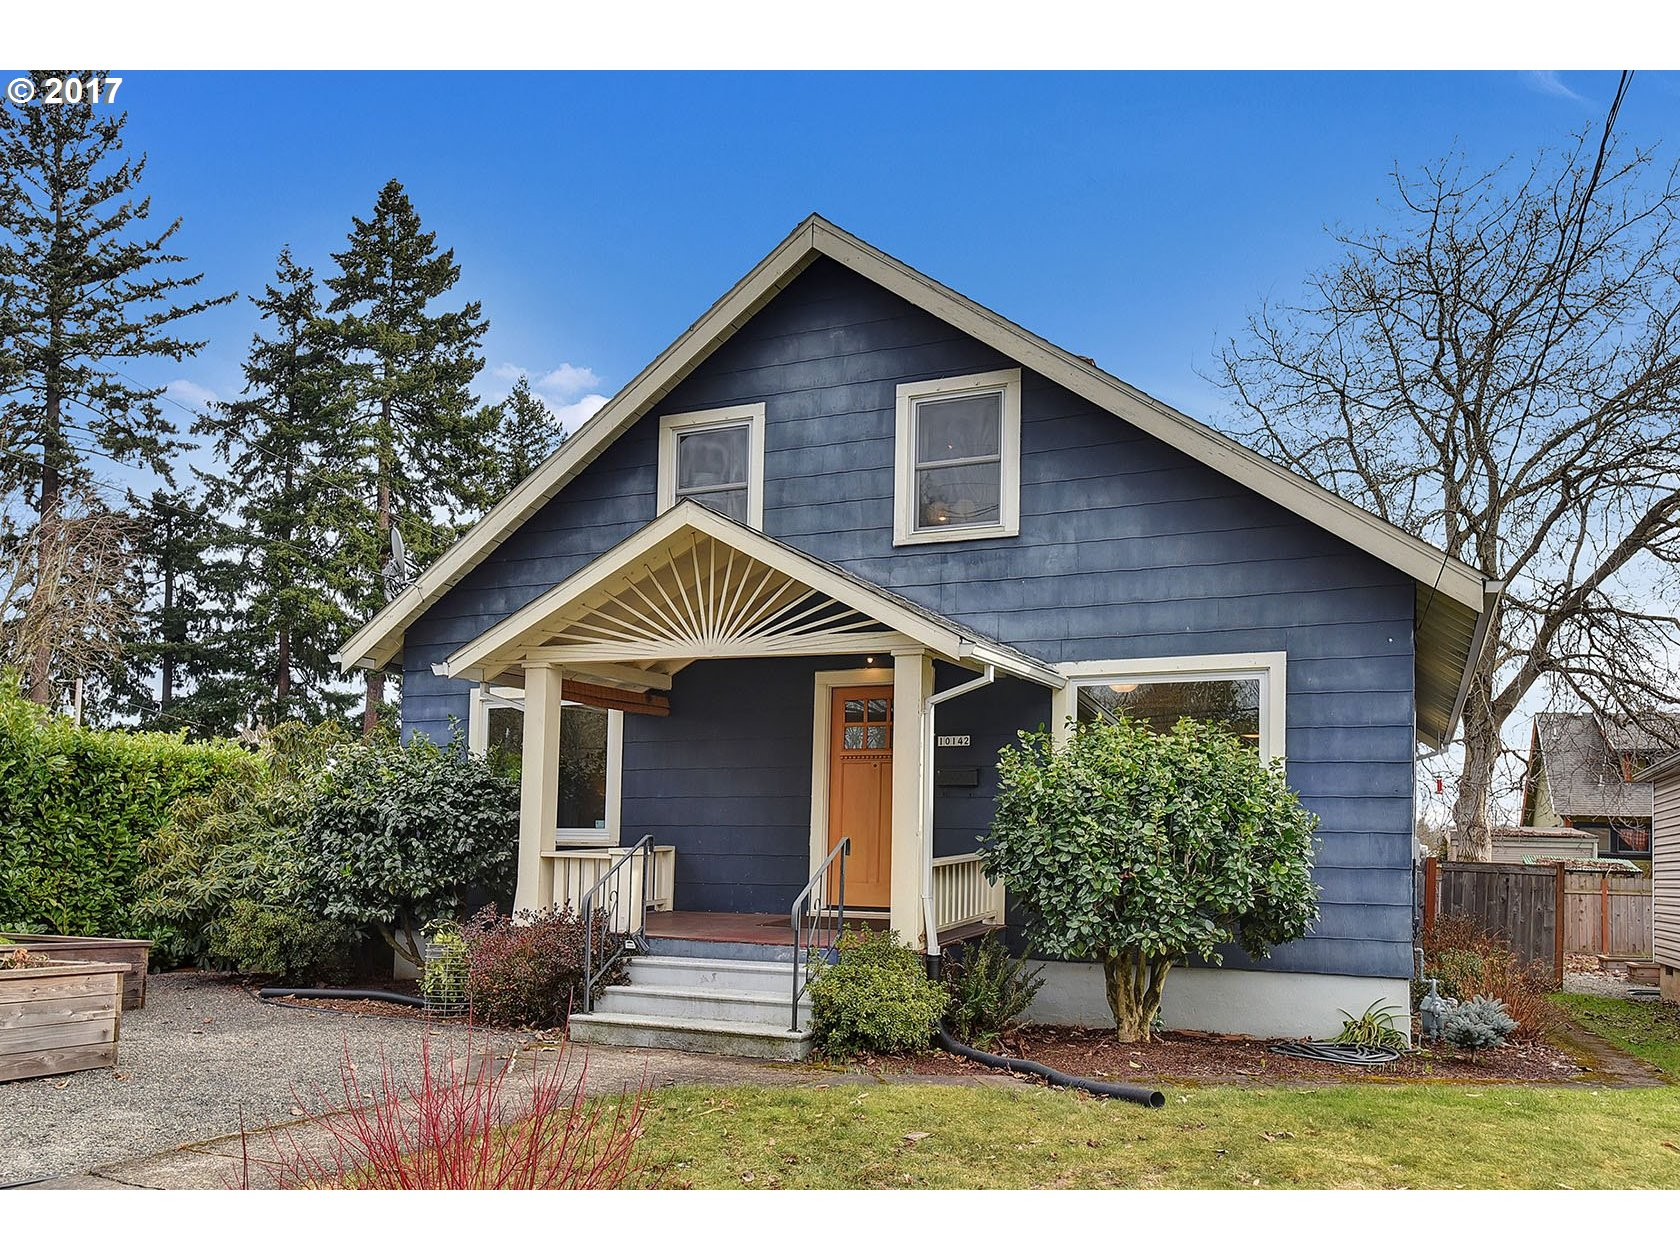 2560 sq. ft 3 bedrooms 2 bathrooms  House For Sale,Portland, OR